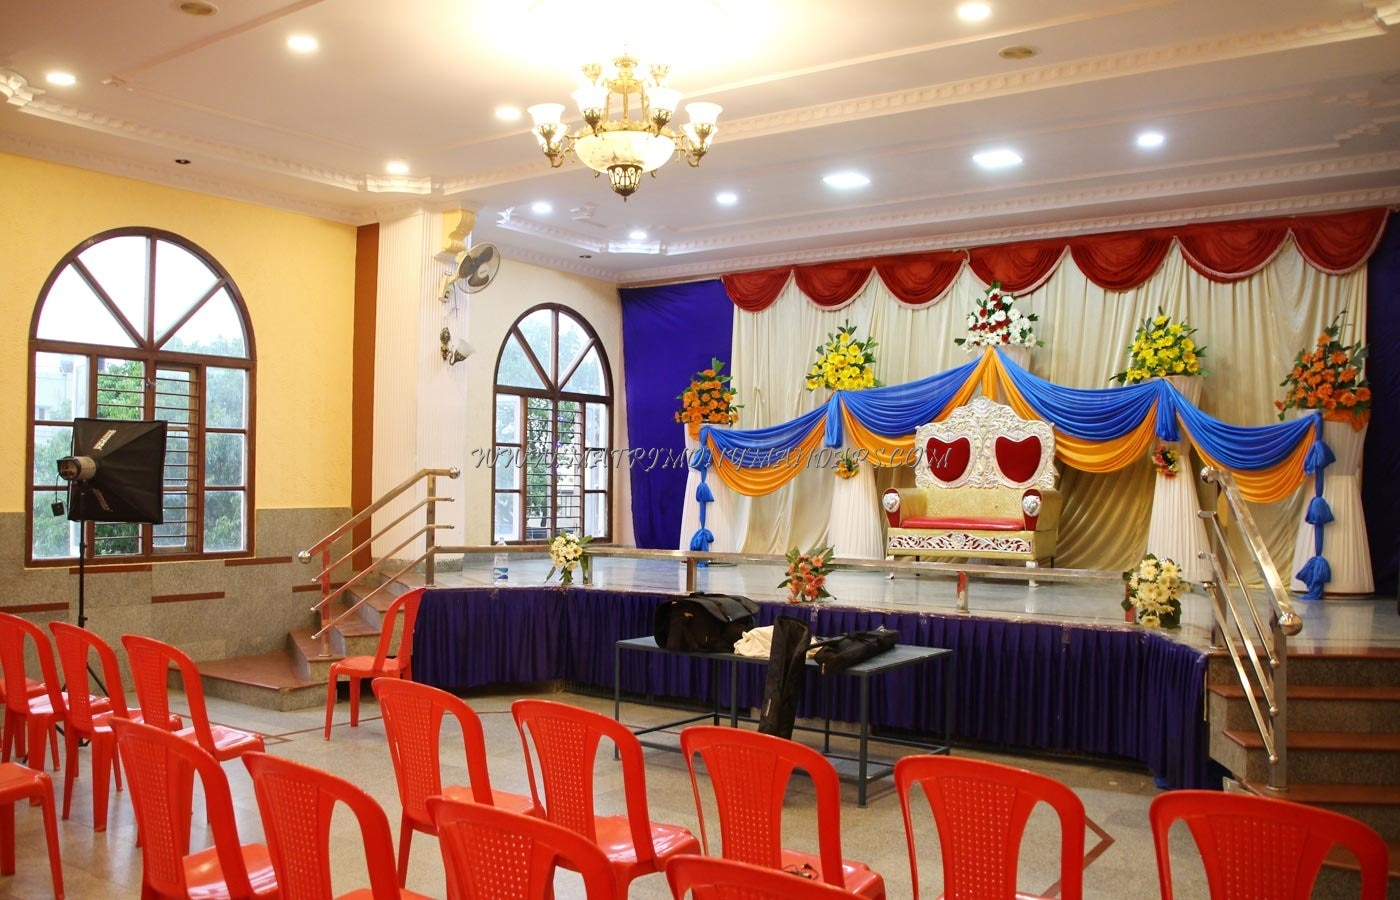 Find the availability of the Sri Lakshmi Party Hall in Kammanahalli, Bangalore and avail special offers